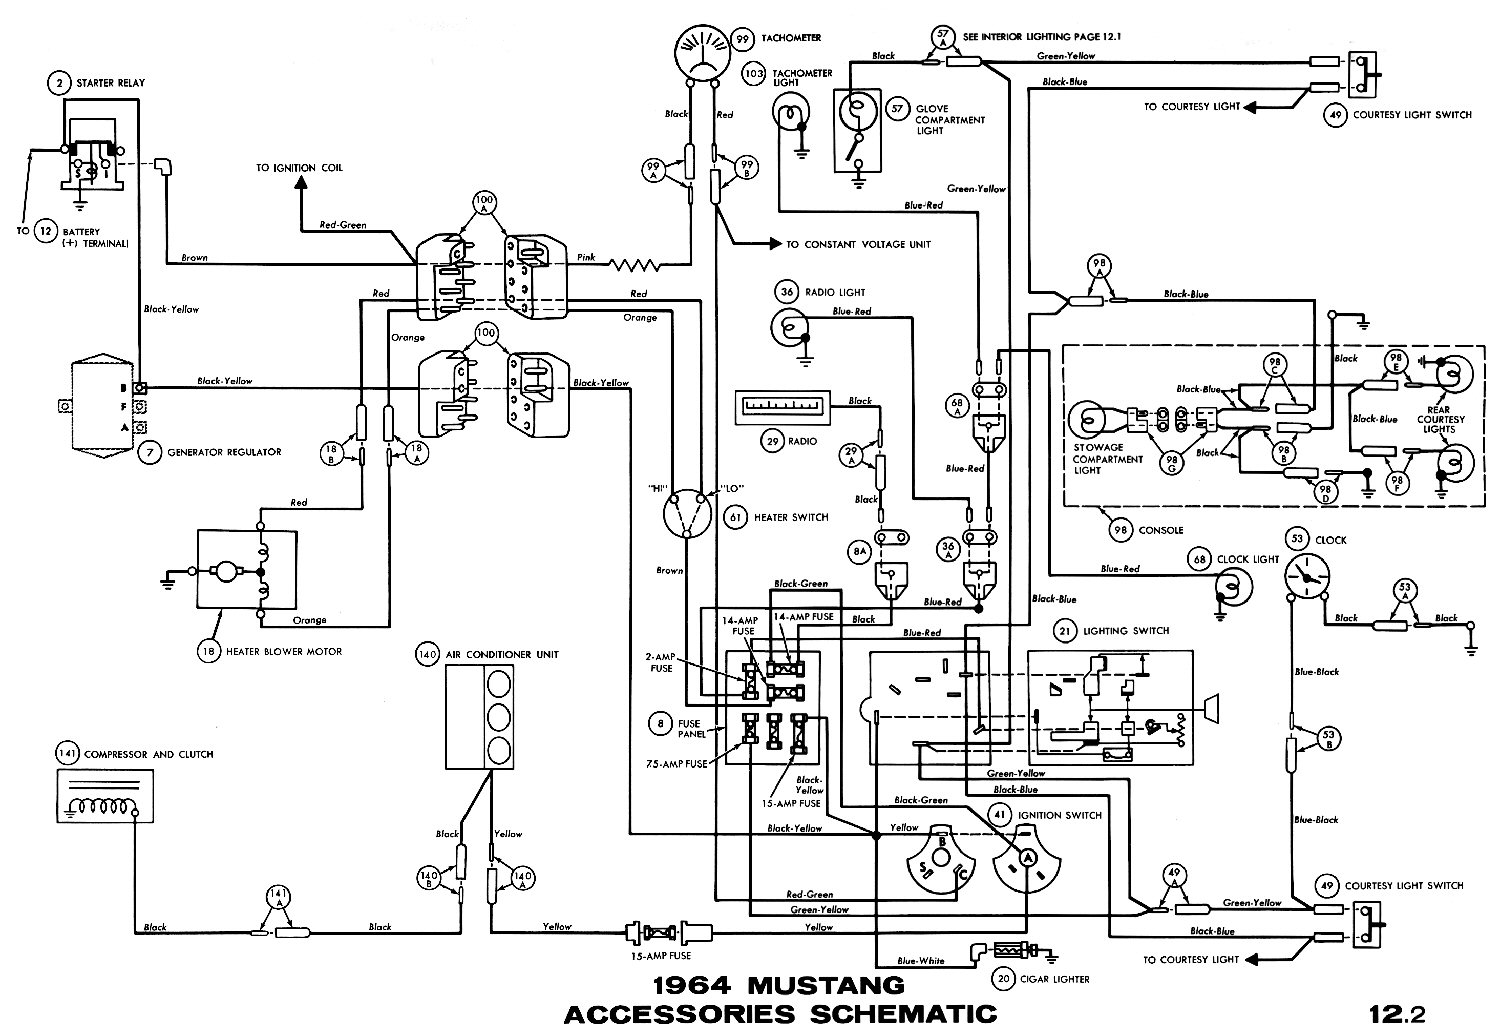 65 Mustang Ignition Switch Wiring Diagram Detailed Schematics 1964 El Camino Alternator Diagrams Electrical 1966